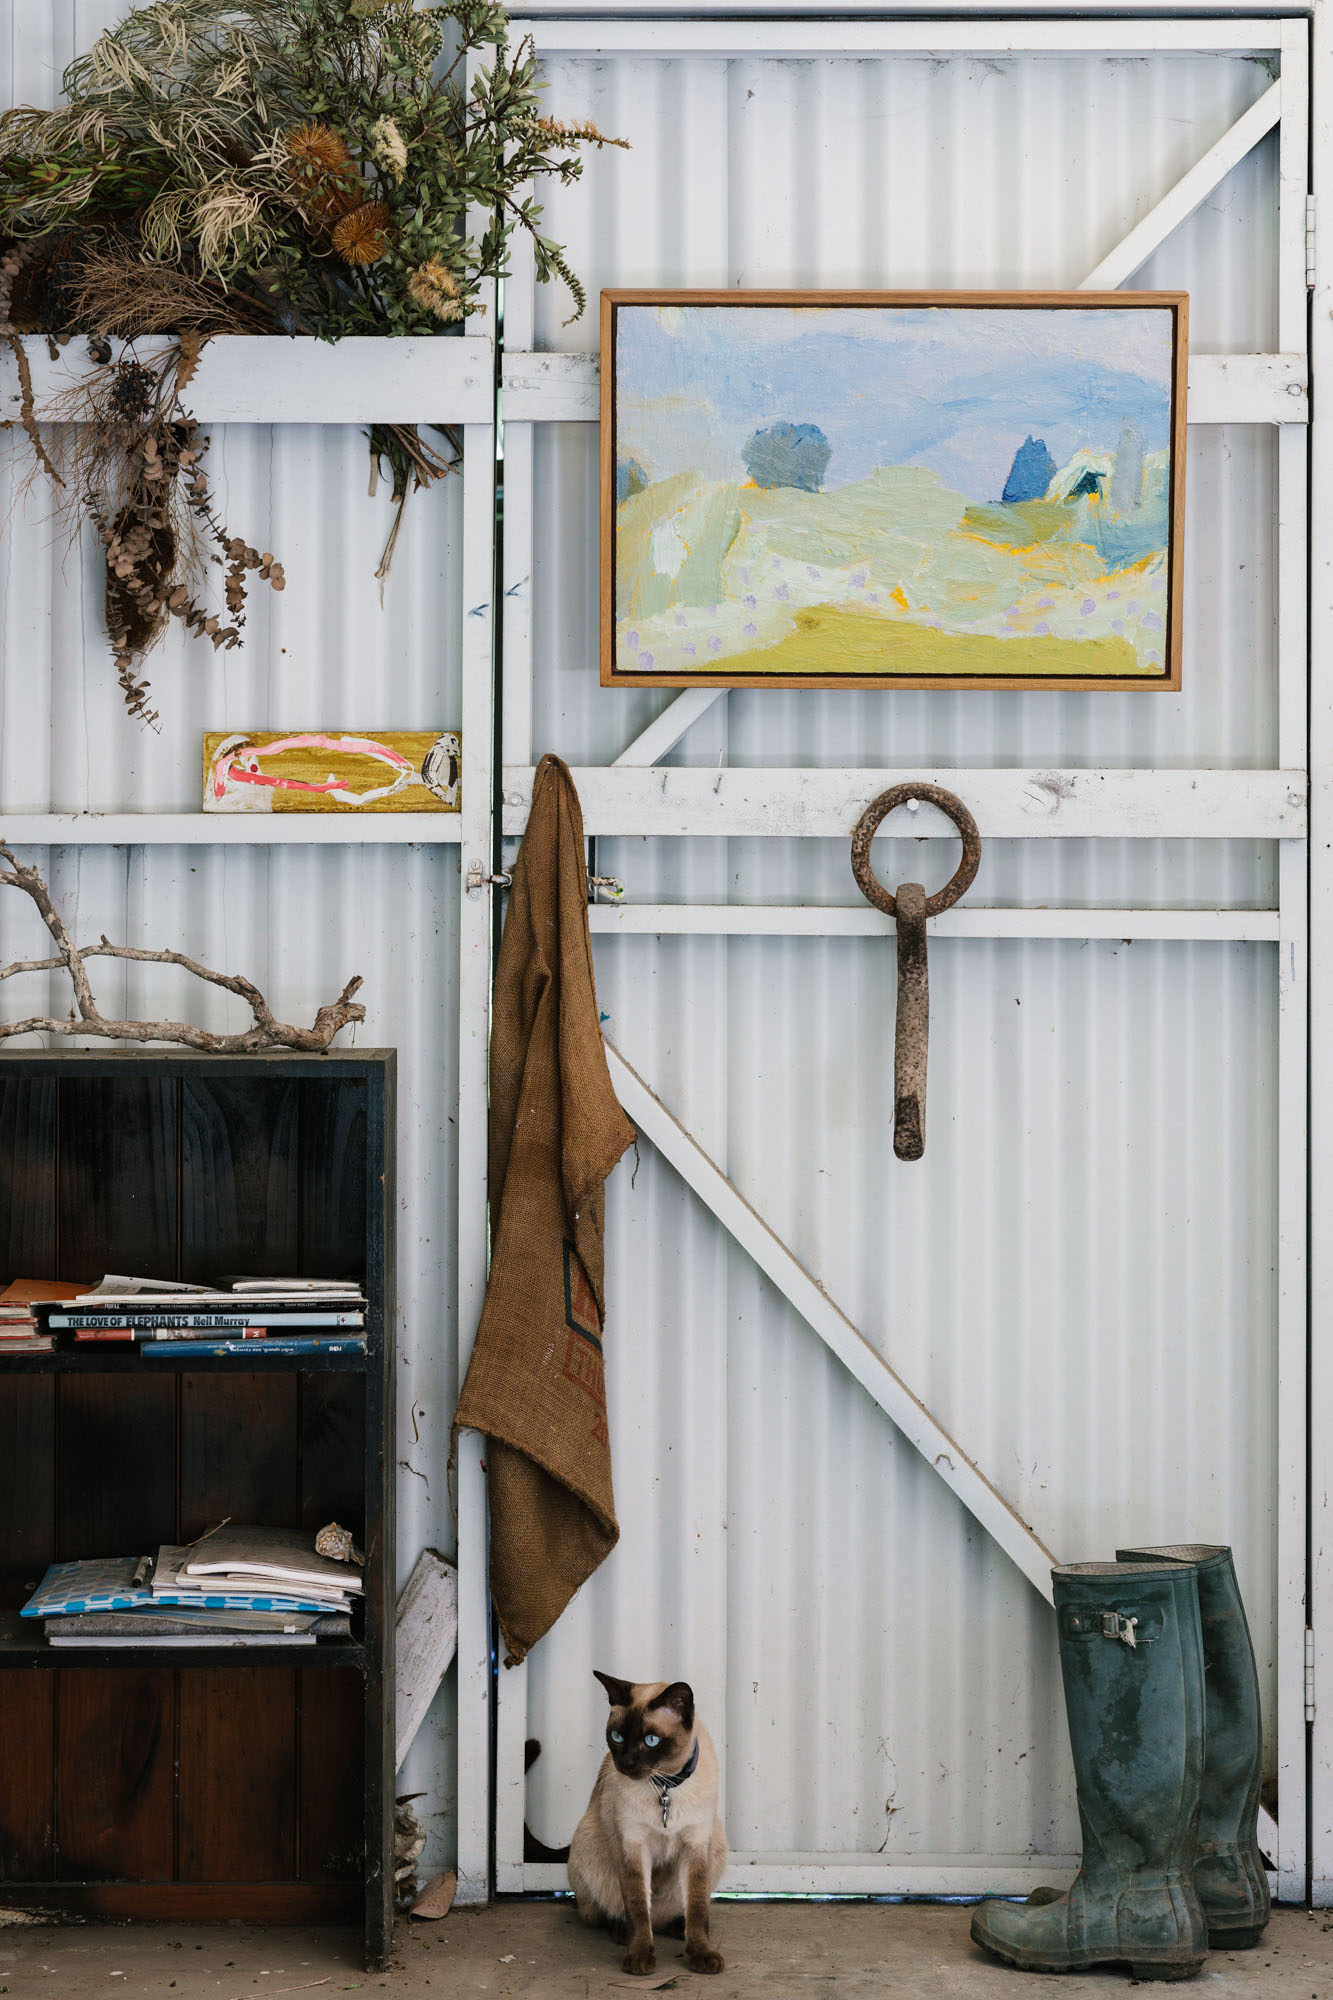 Melbourne interior photography by Marnie Hawson for Country Style and Amy Clarke artist.